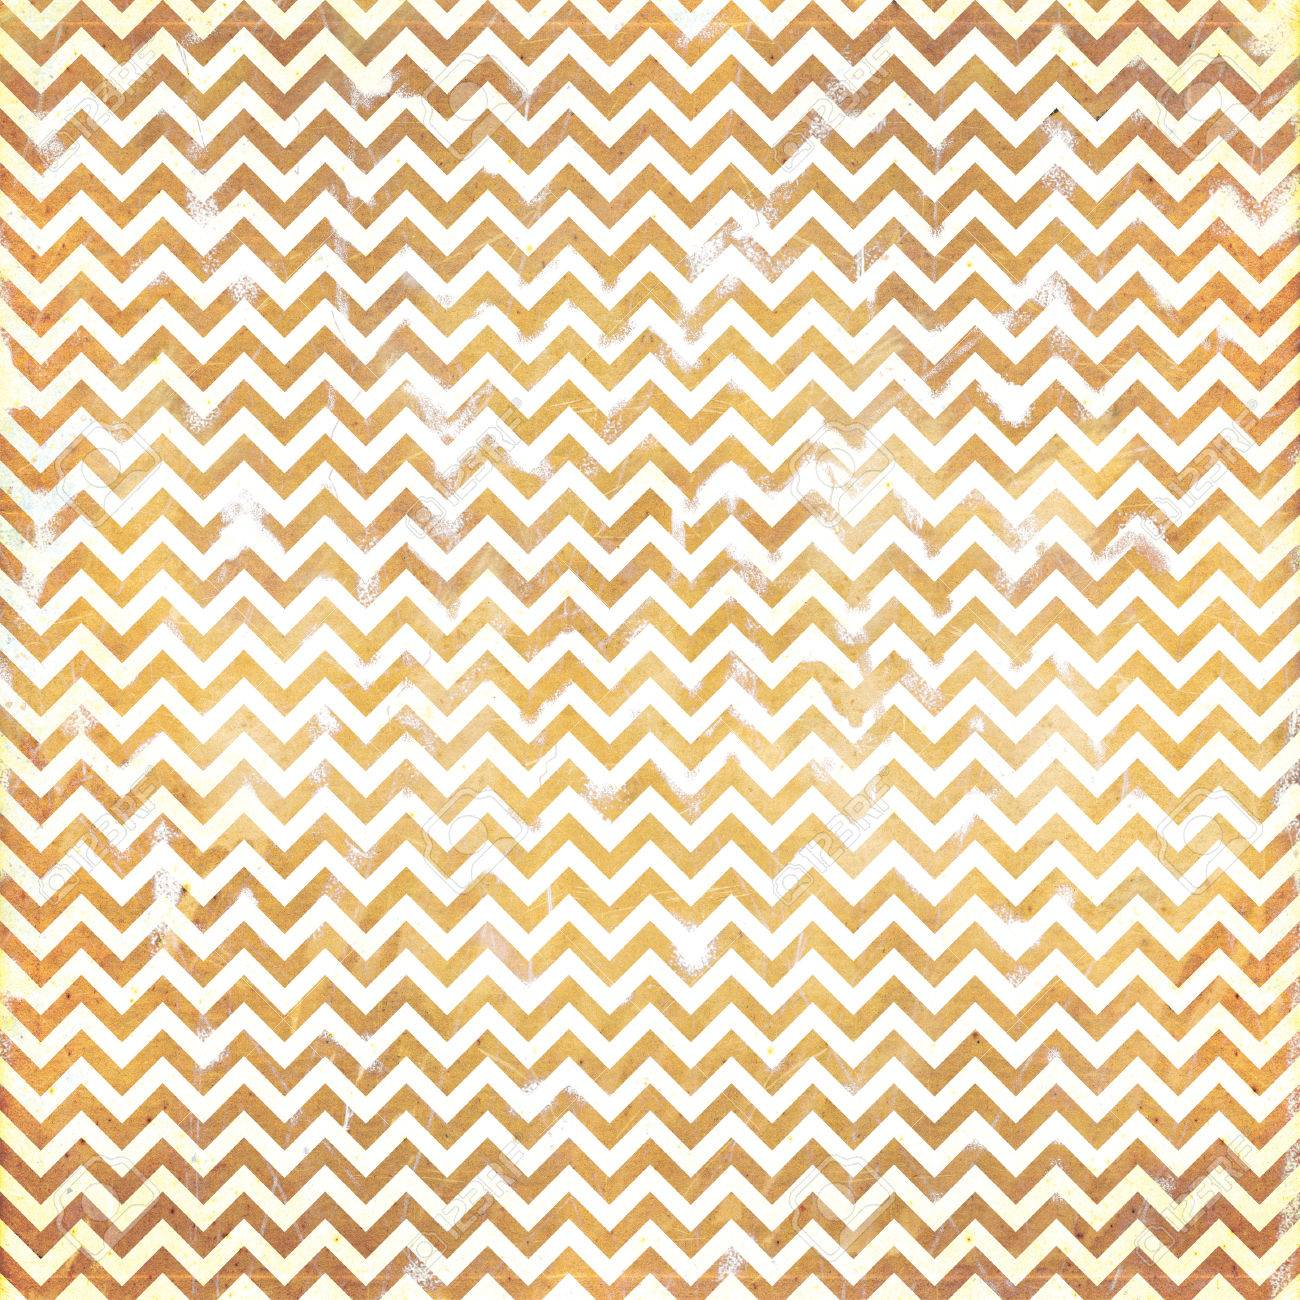 chevron grunge pattern Stock Photo - 23127331